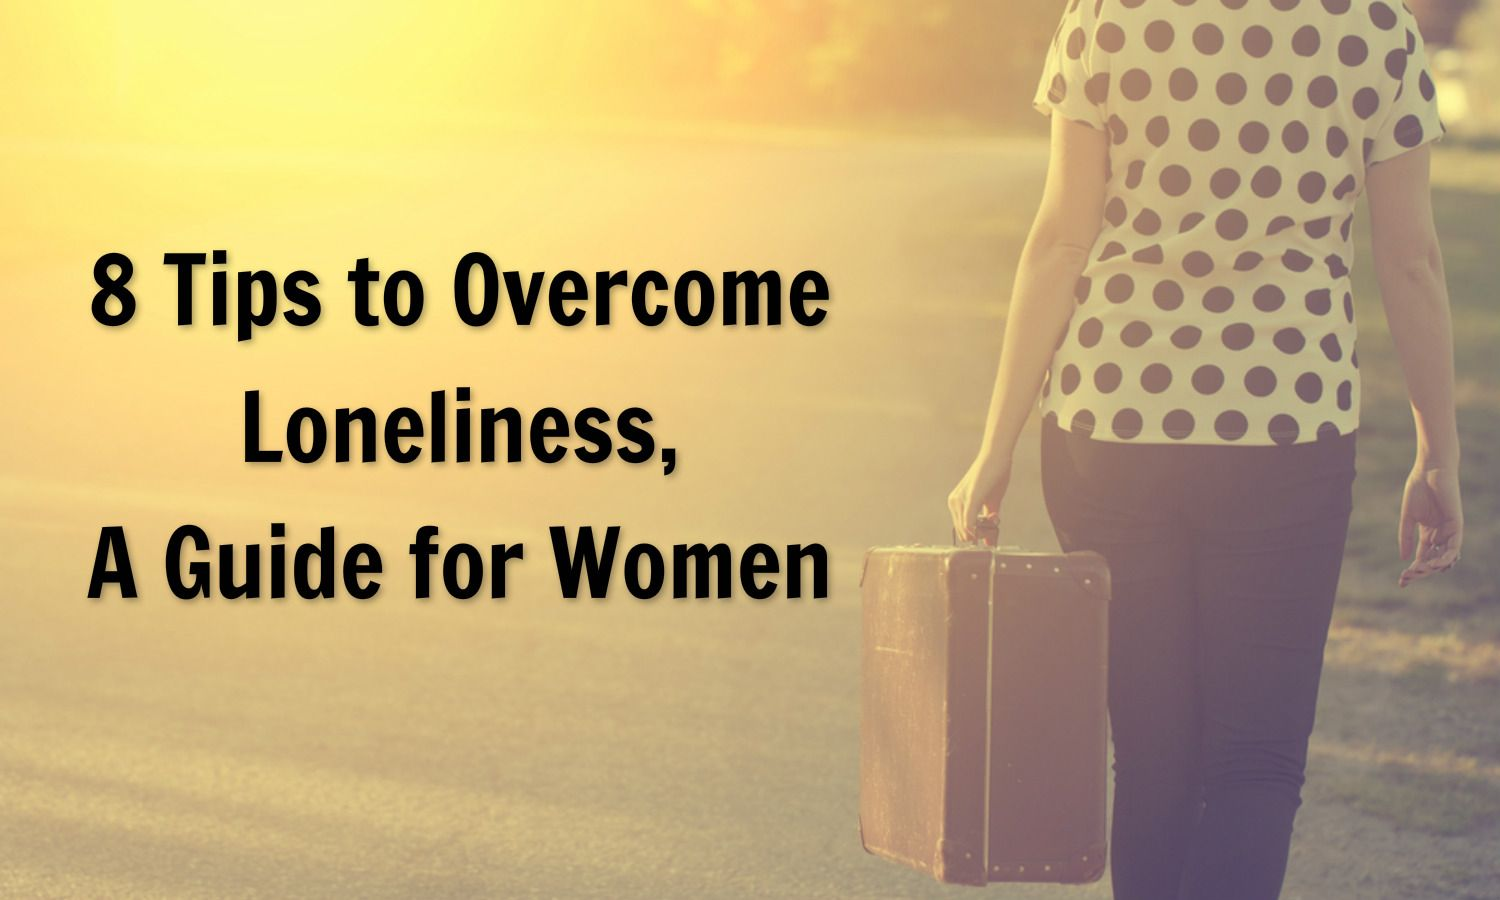 09bce7cf4a Awesome Quotes  8 Tips to Overcome Loneliness